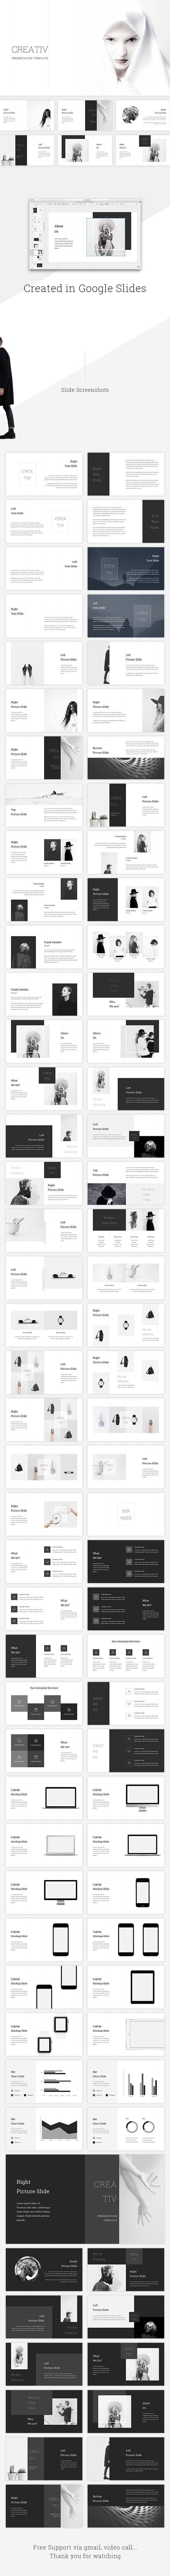 135 best graphics images on pinterest minimal posters and ppt